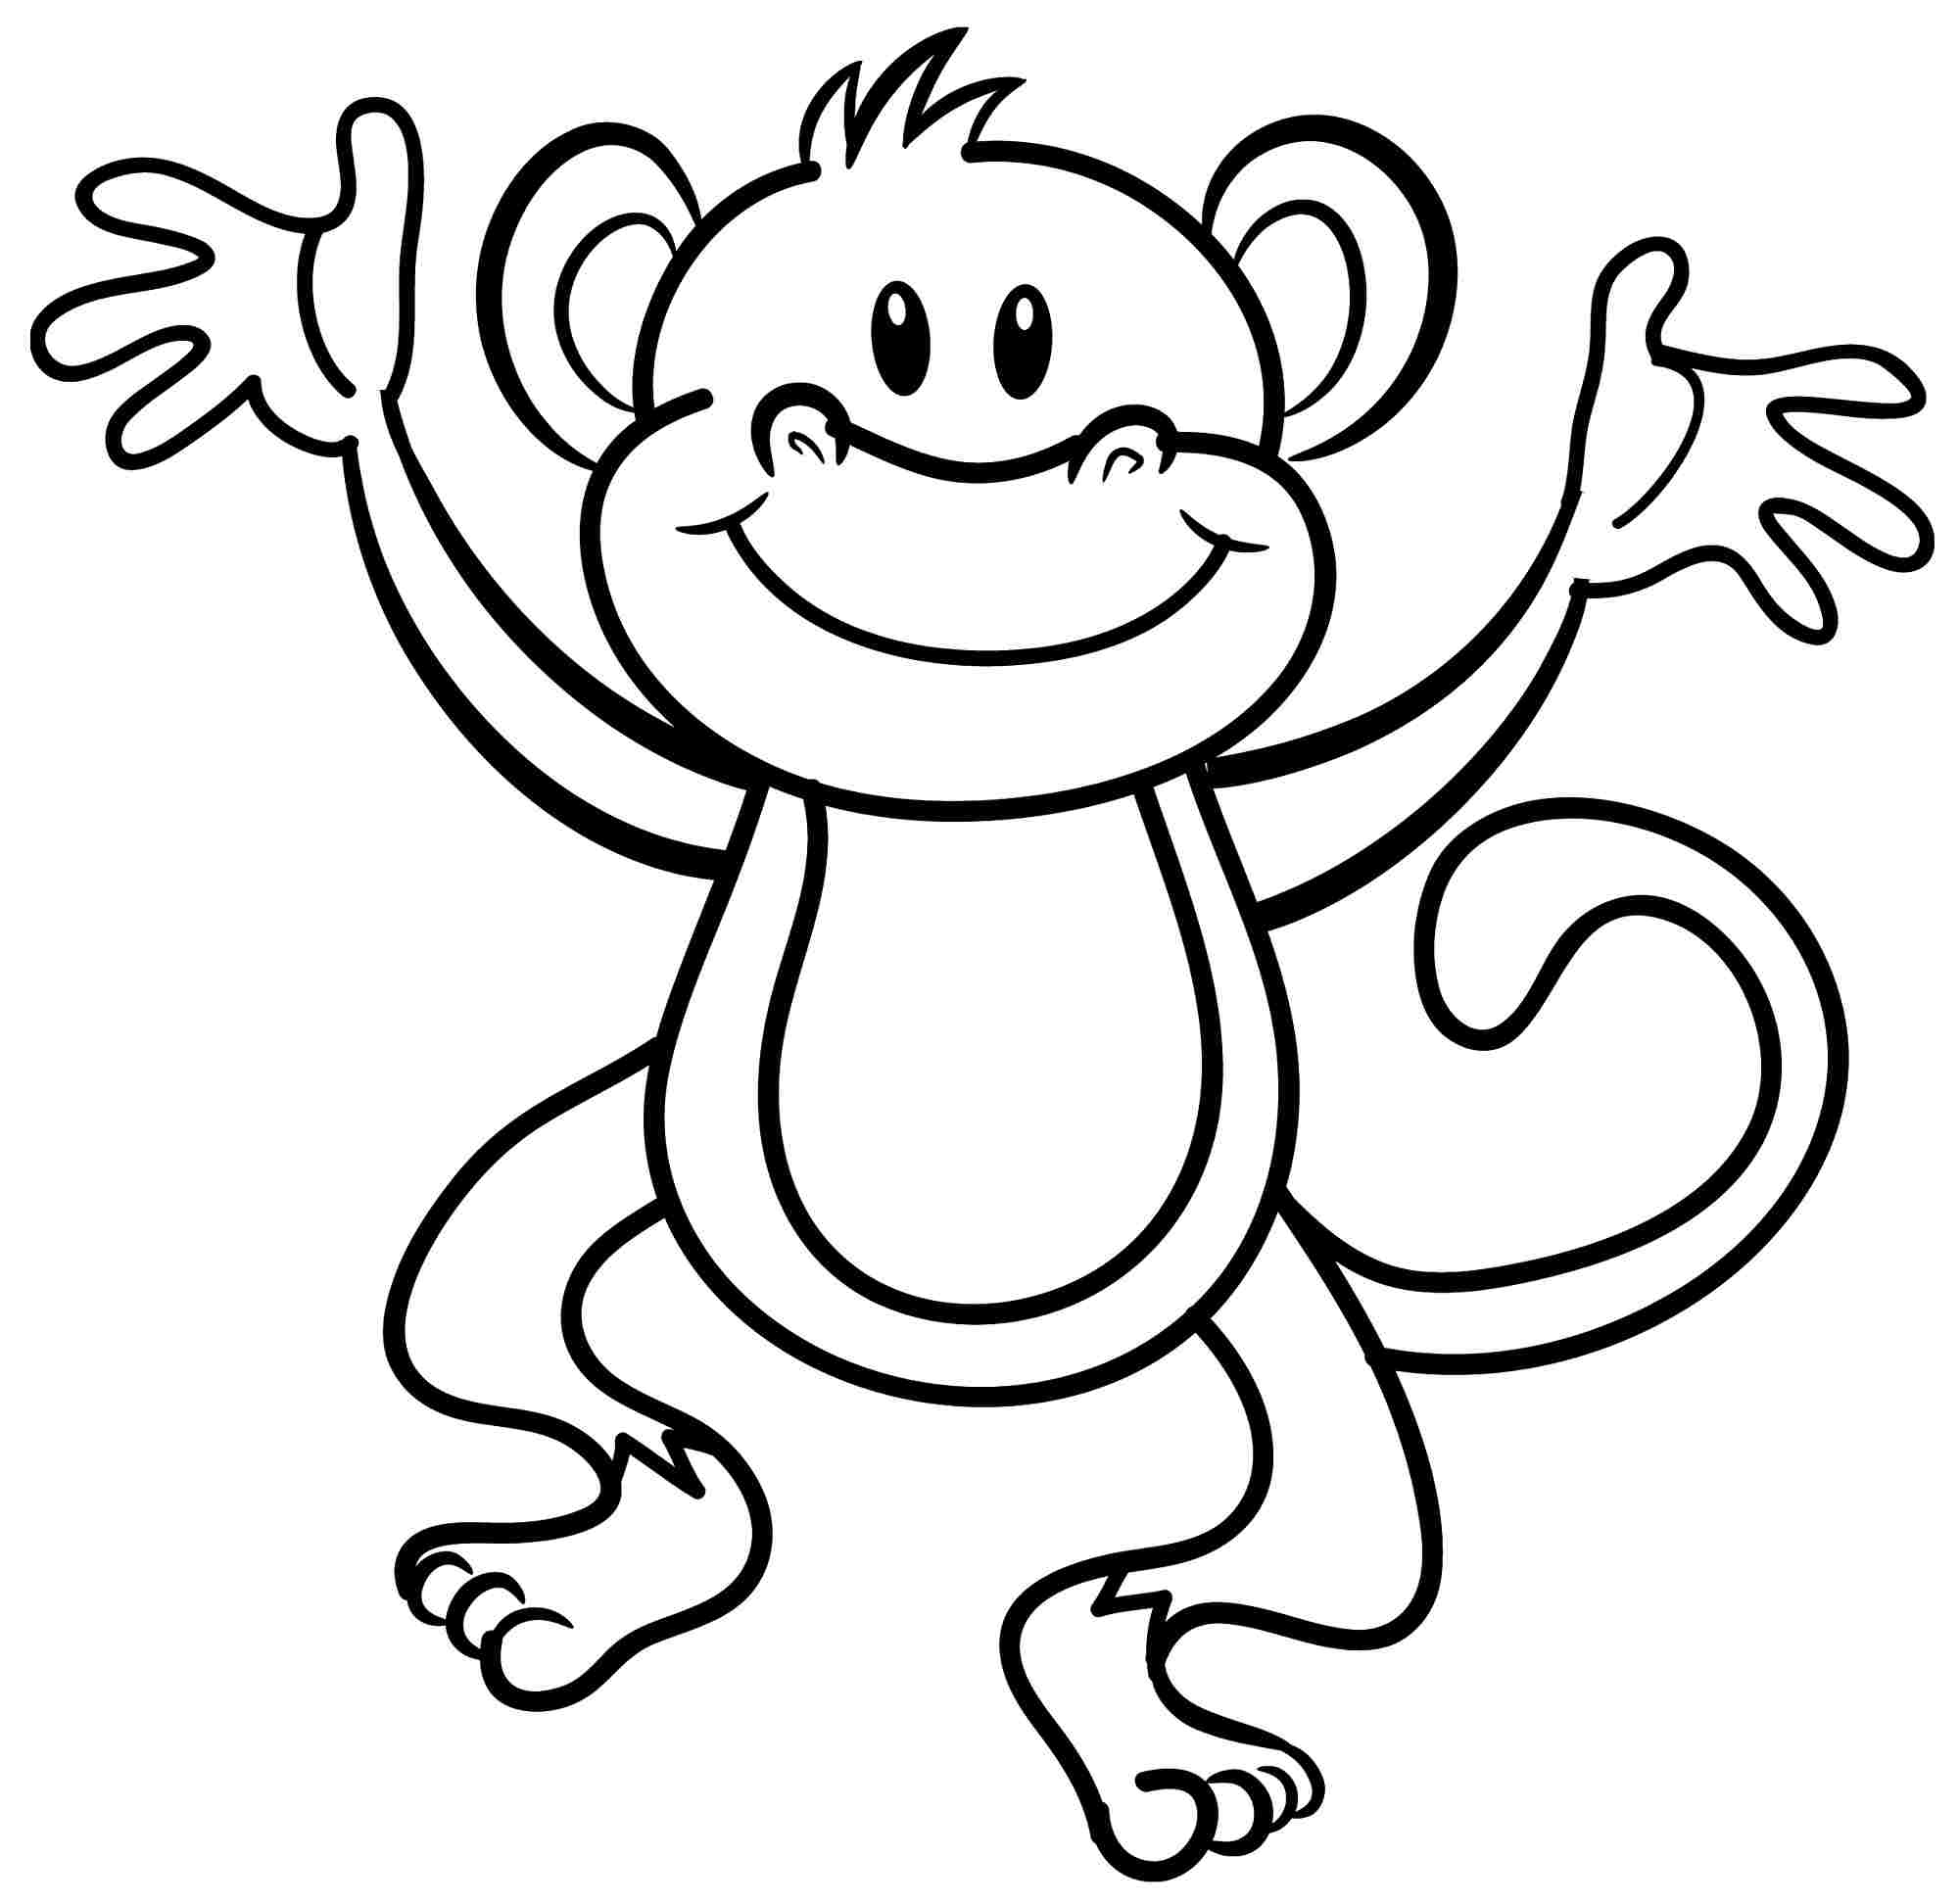 monkey coloring page aaldtk